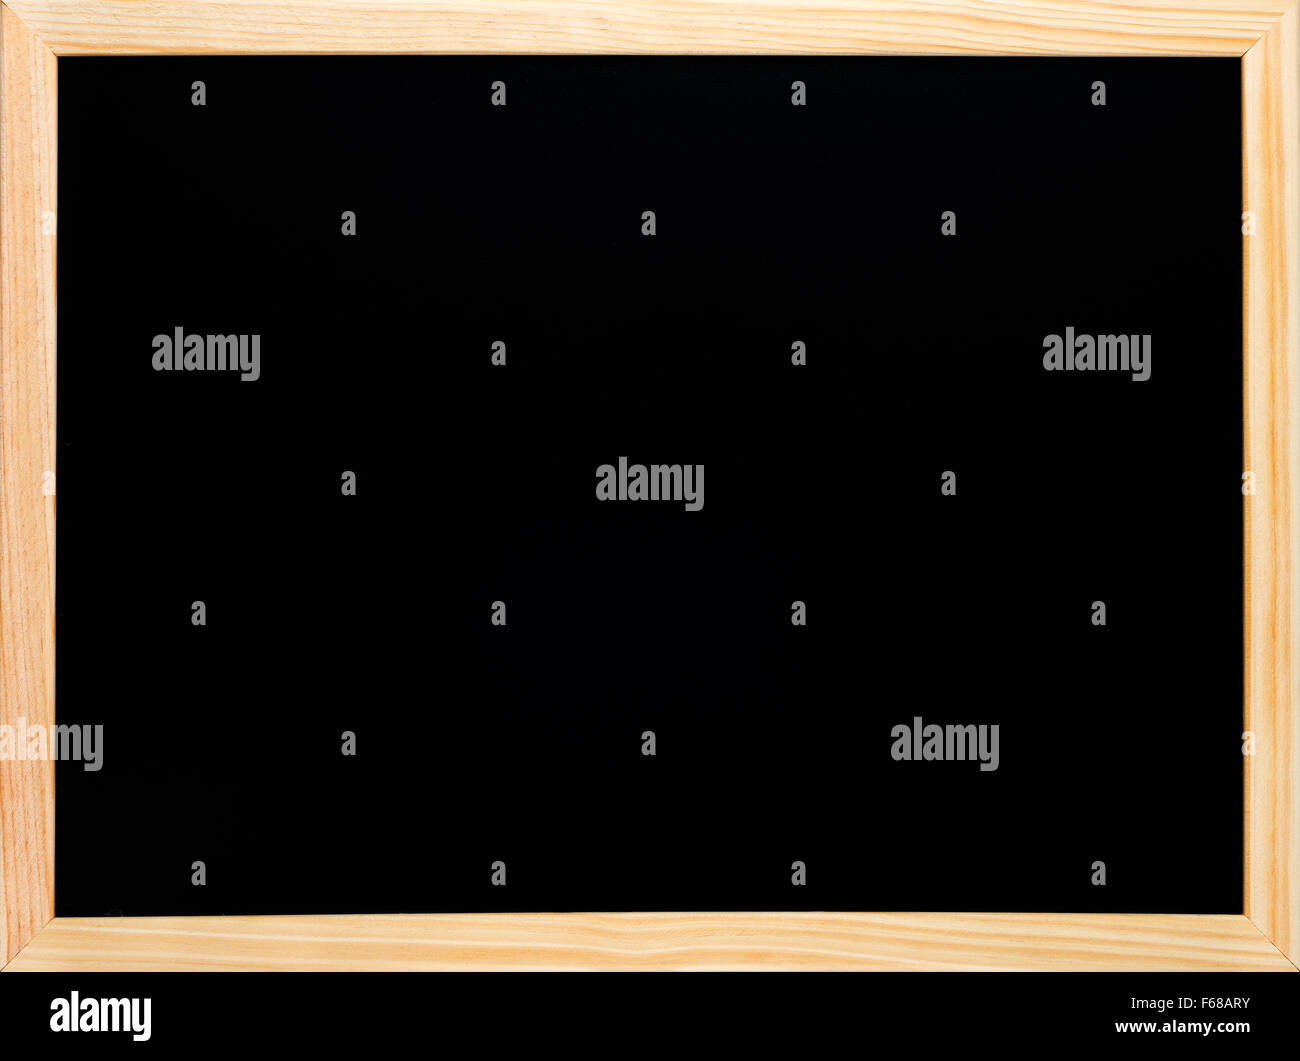 Rectangular wooden blackboard or chalkboard. Empty black writing surface ready for chalk text or drawing. - Stock Image